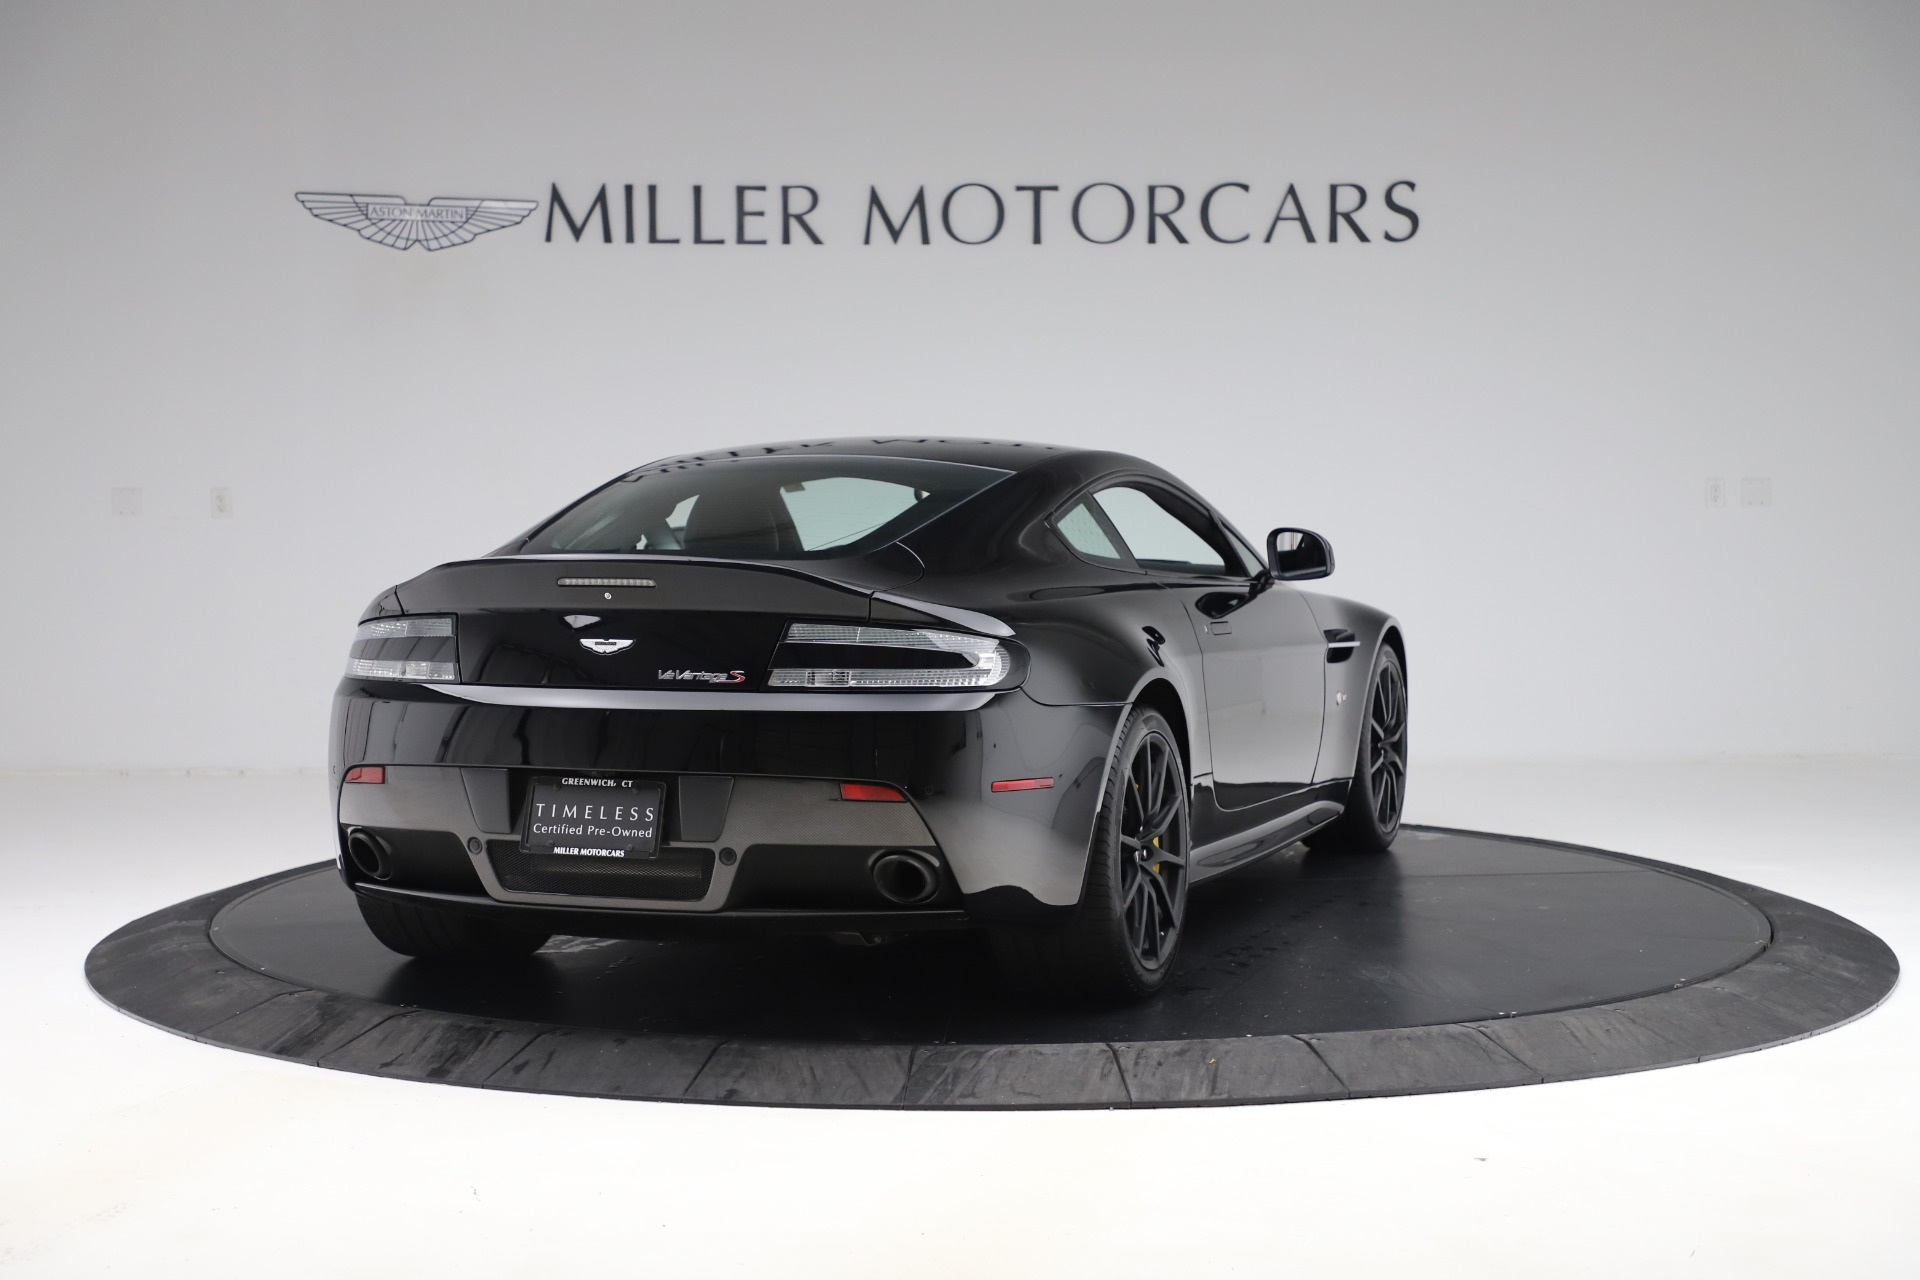 Used 2015 Aston Martin V12 Vantage S Coupe For Sale In Westport, CT 3513_p7